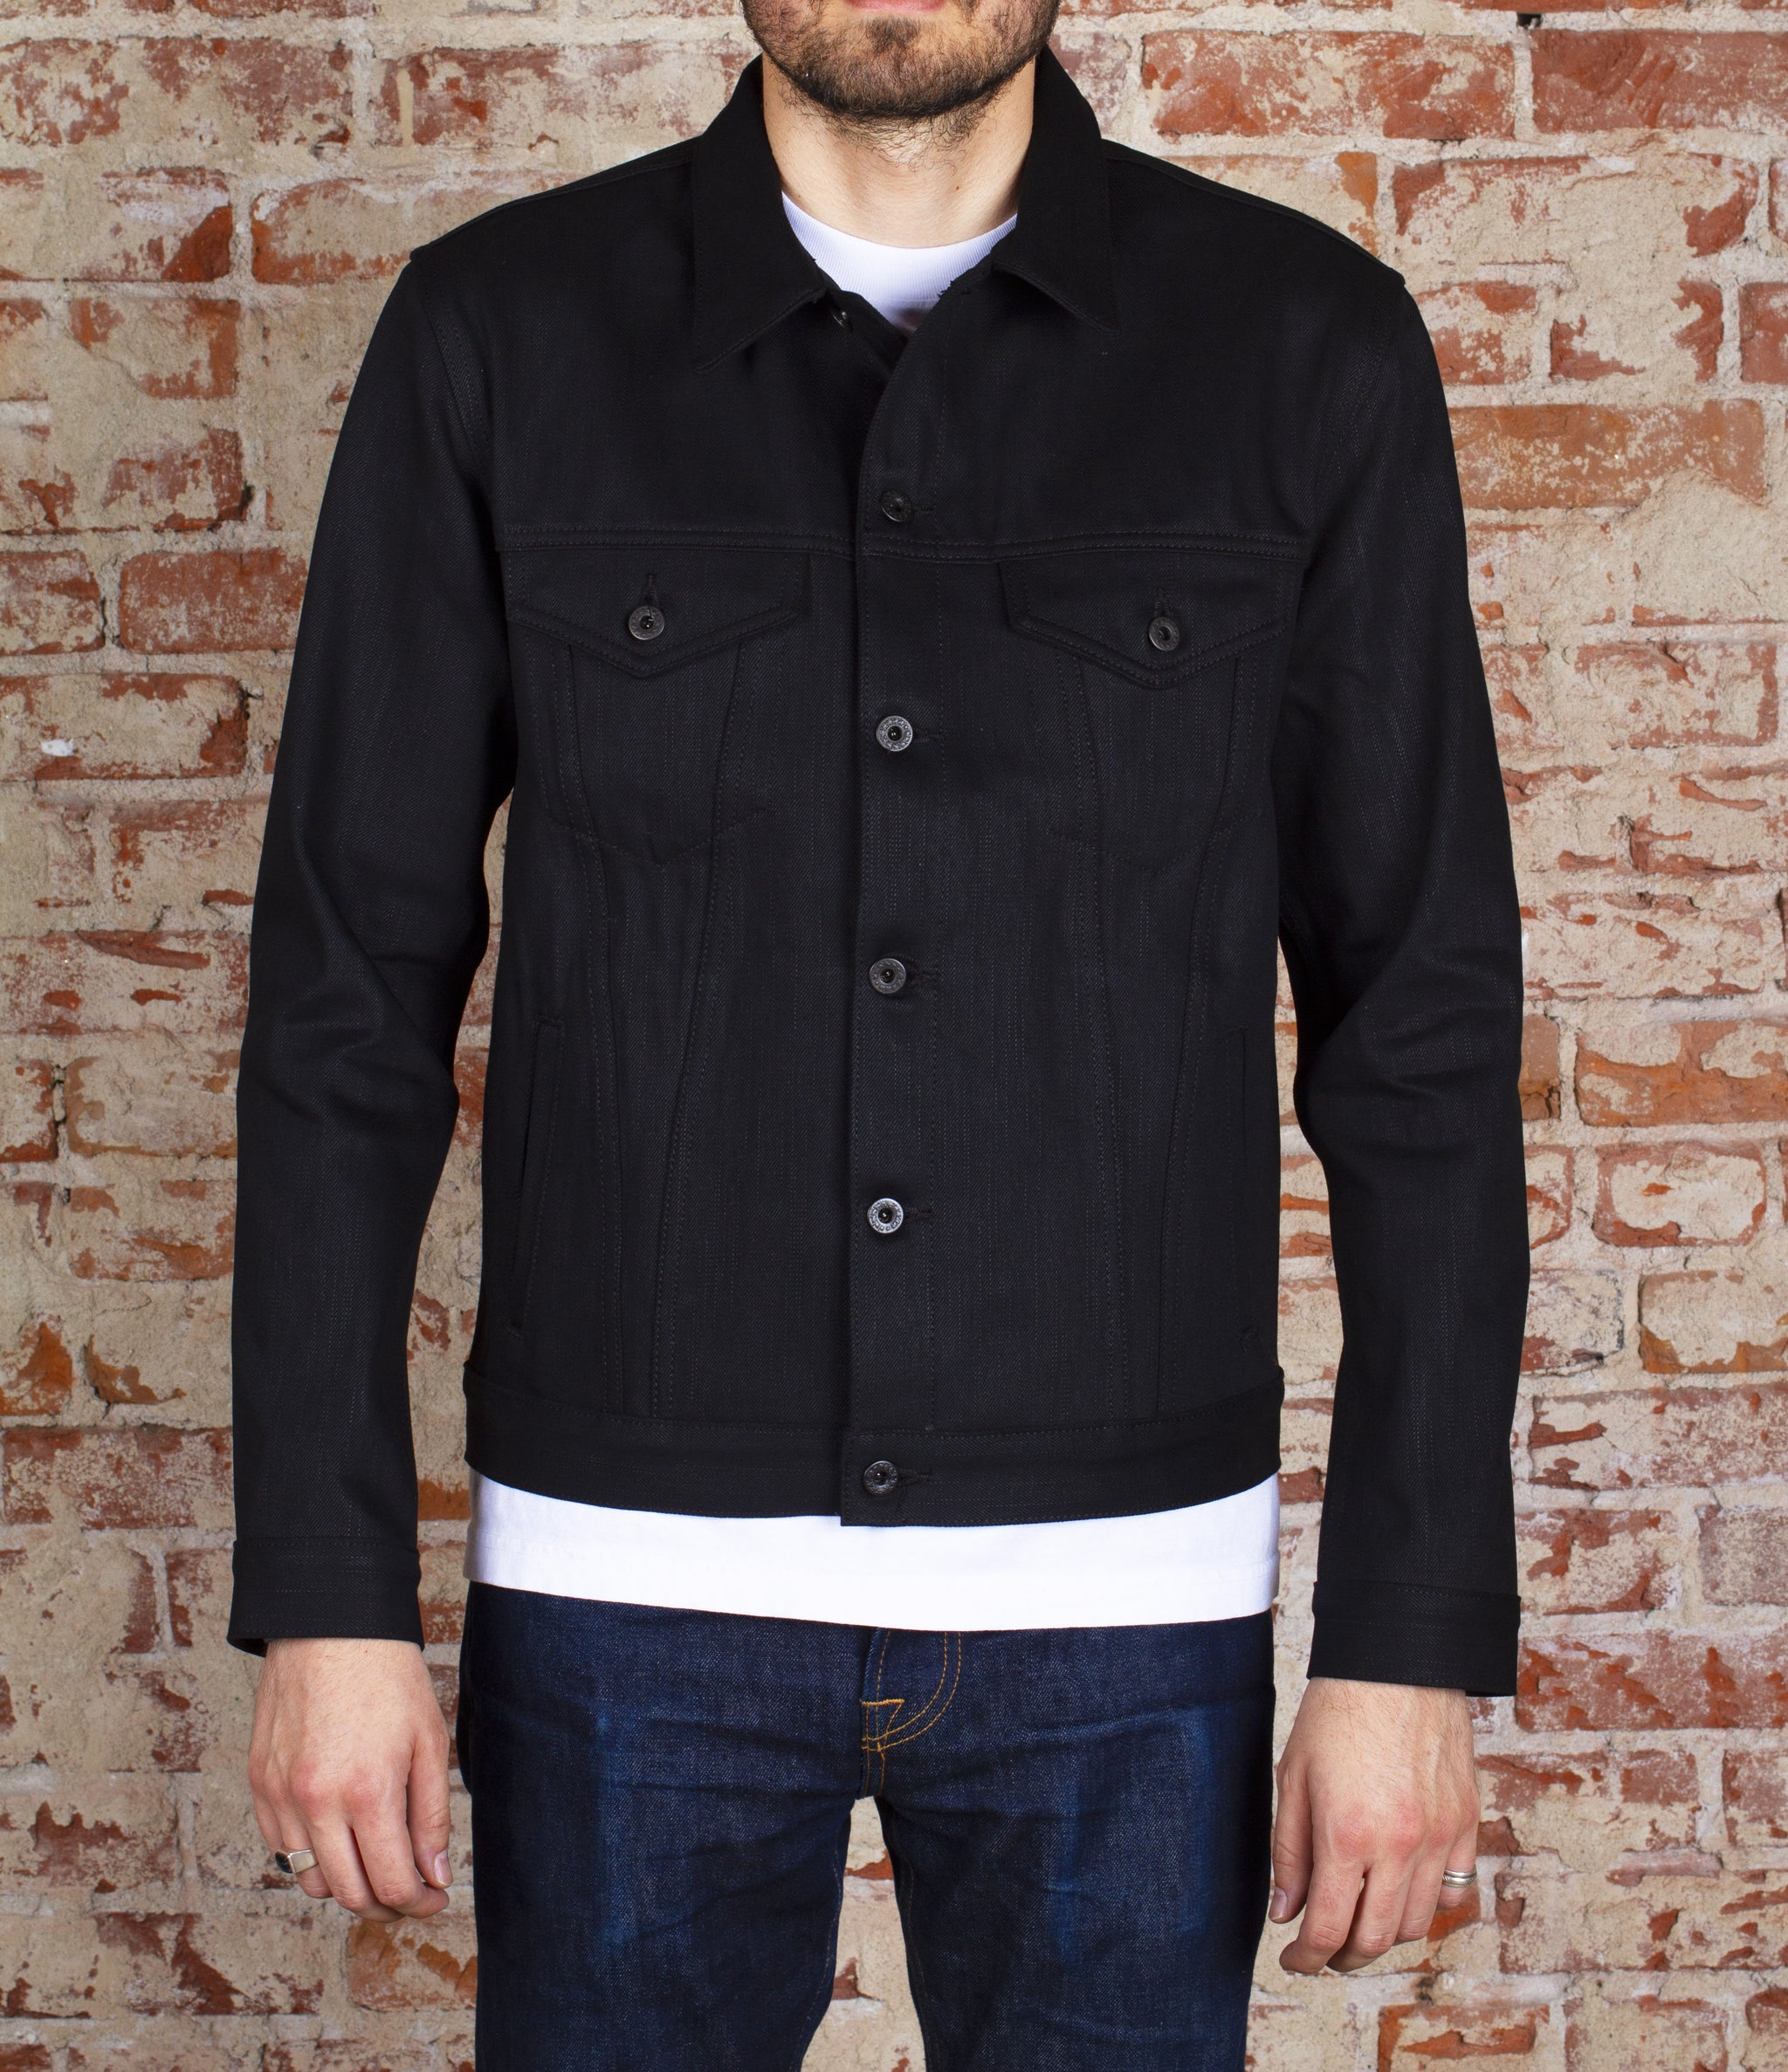 The Ironside 21.5oz Heavyweight Double Black Selvage Denim Jacket